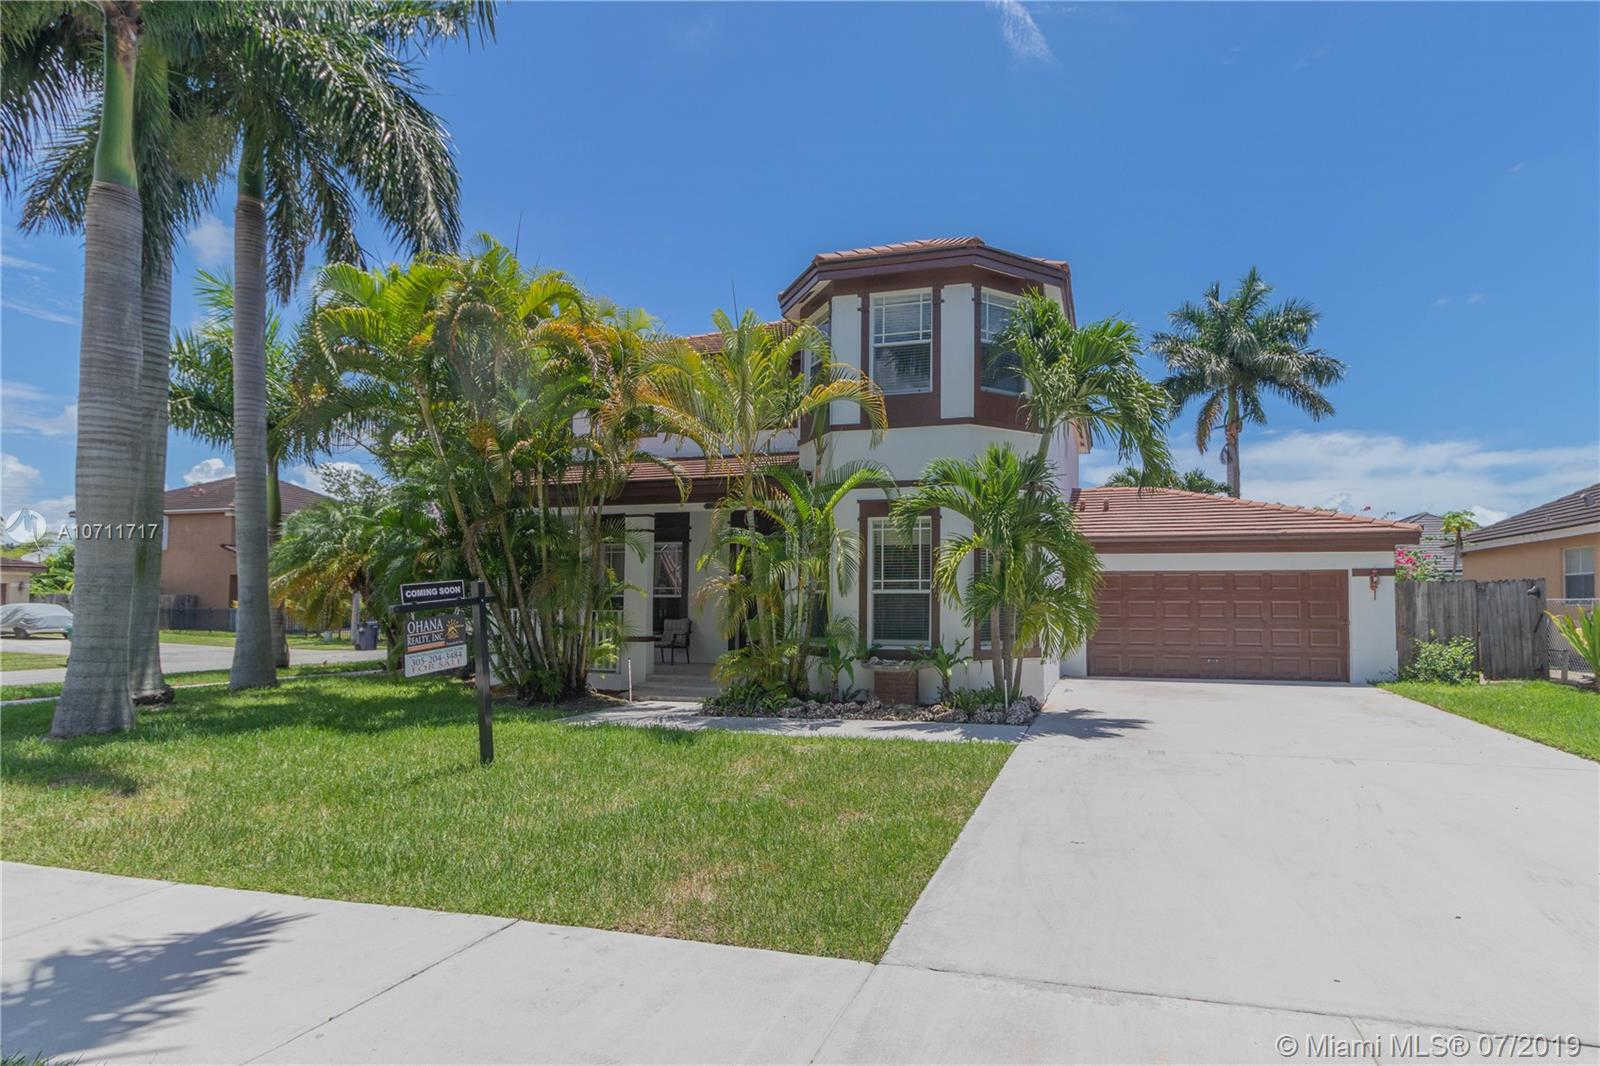 20035 SW 129th Ave, Miami, FL 33177 is now new to the market!